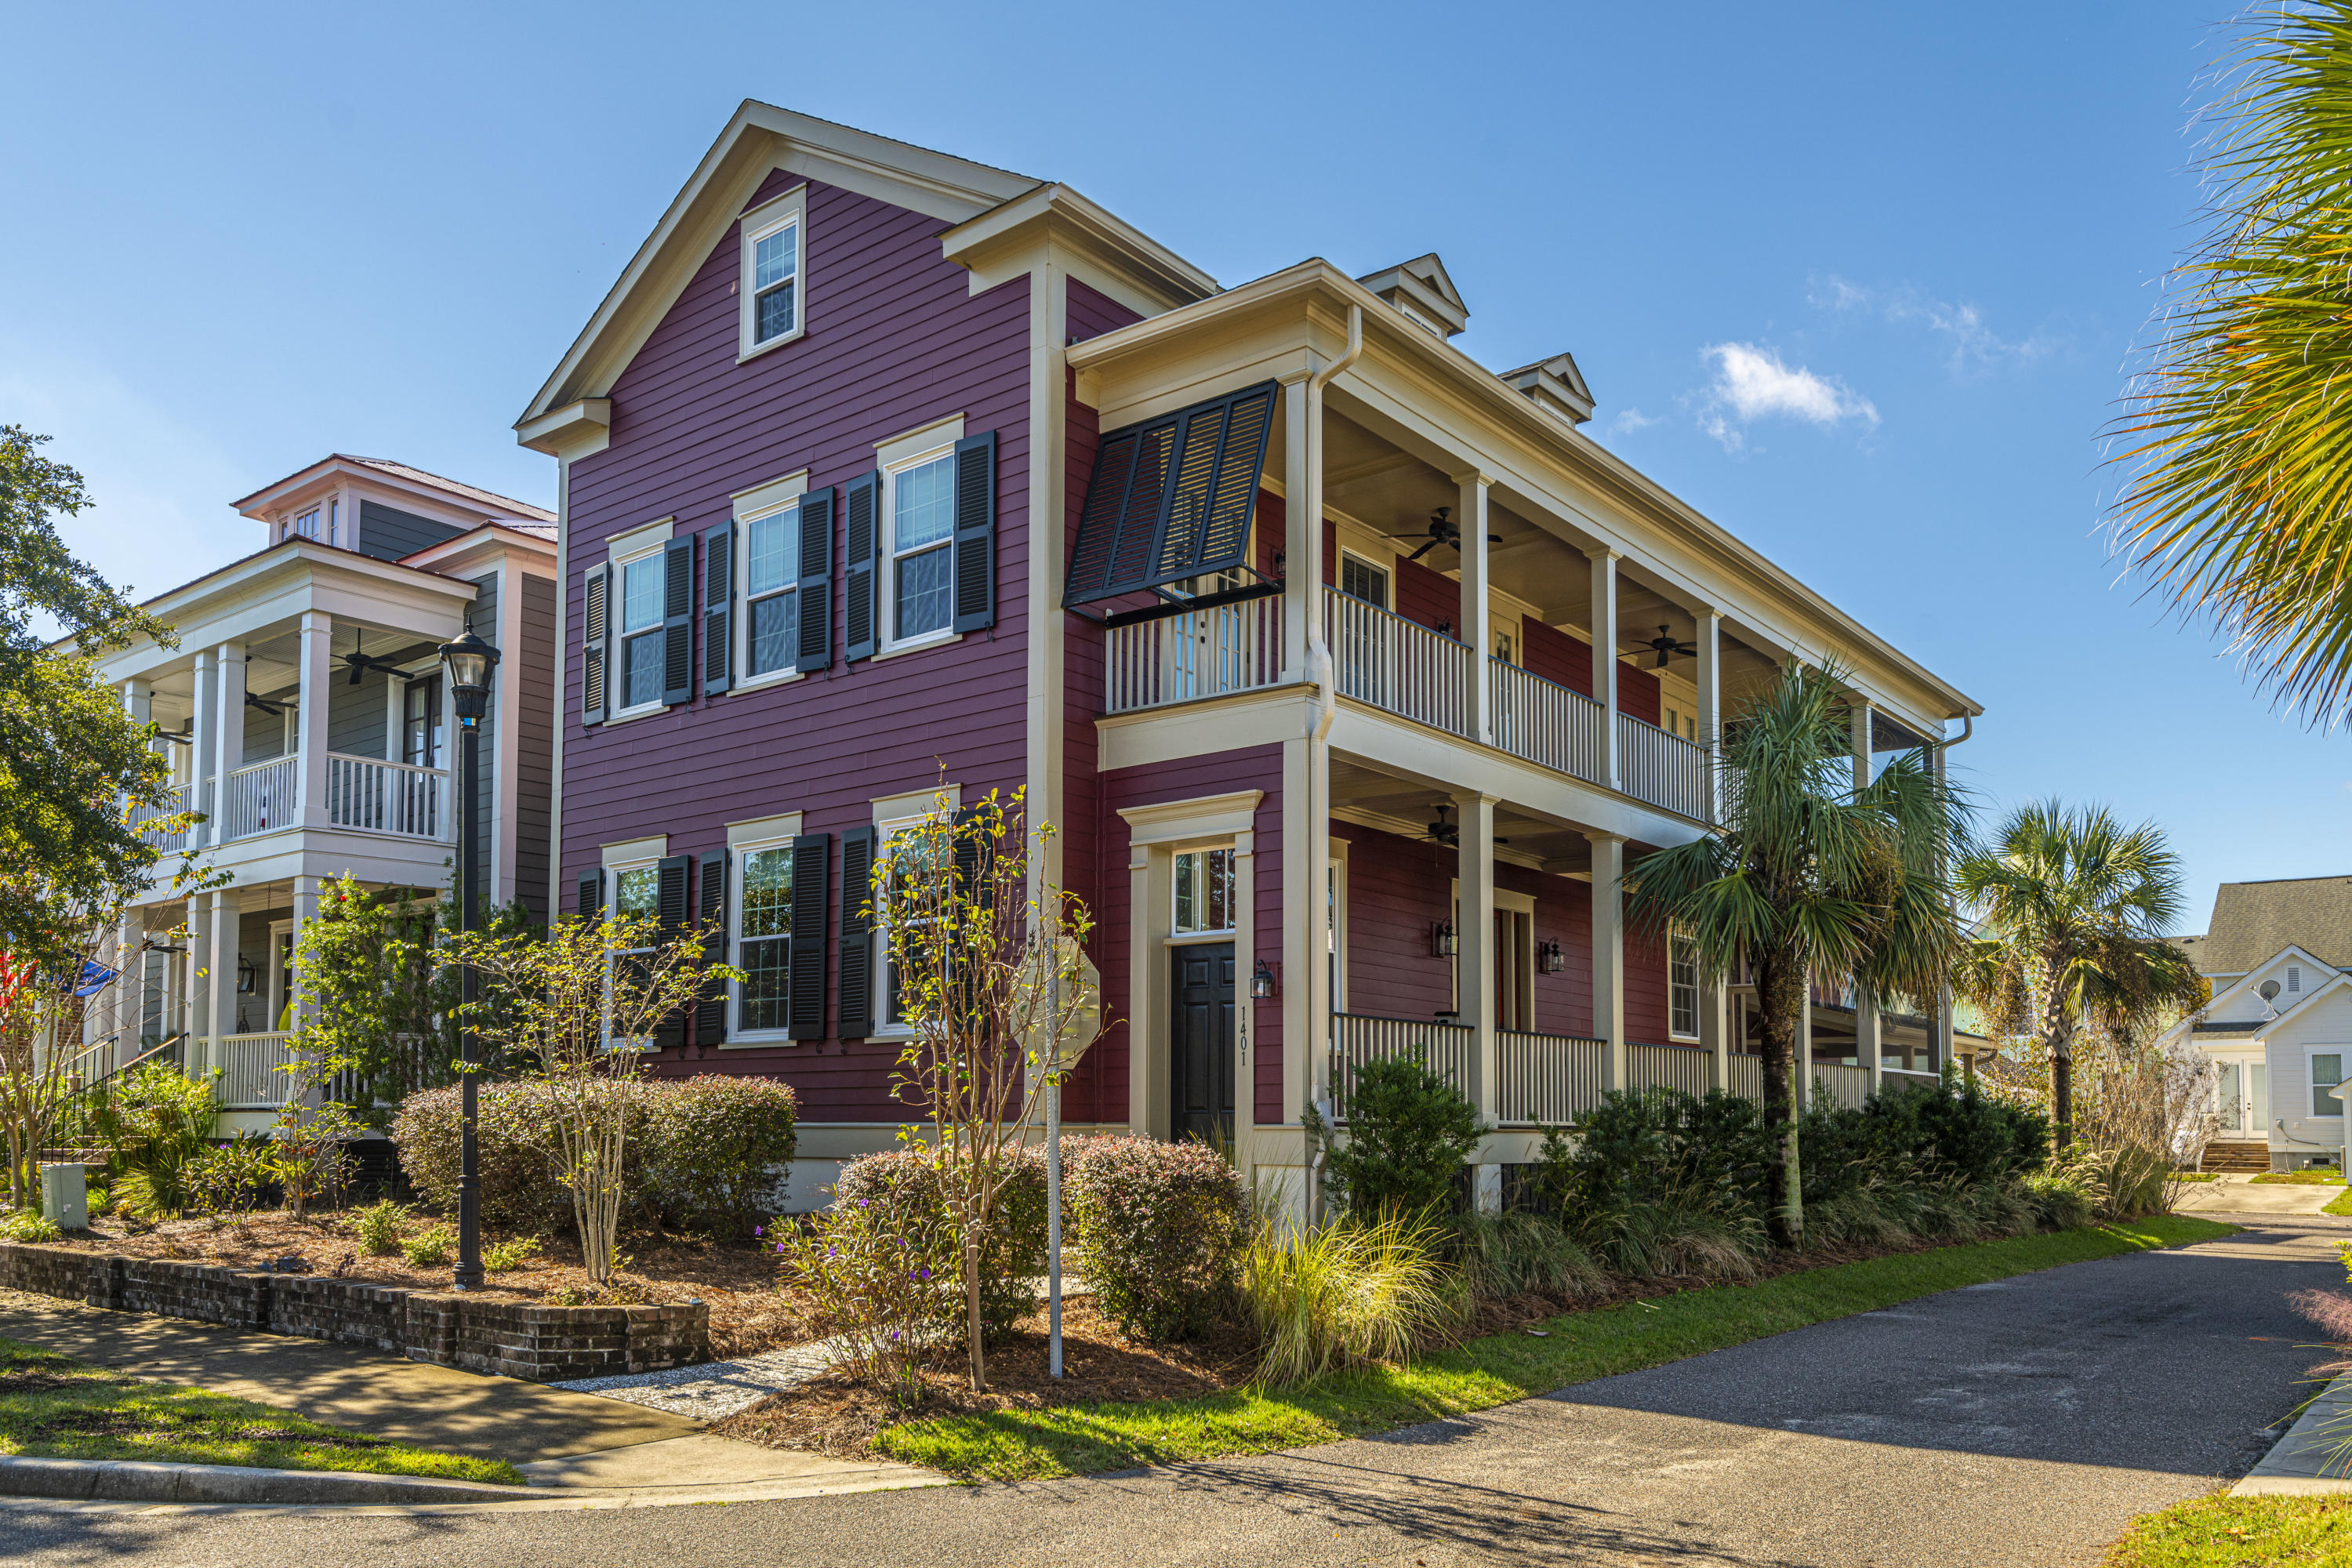 Watermark Homes For Sale - 1401 Lettered Olive, Mount Pleasant, SC - 20